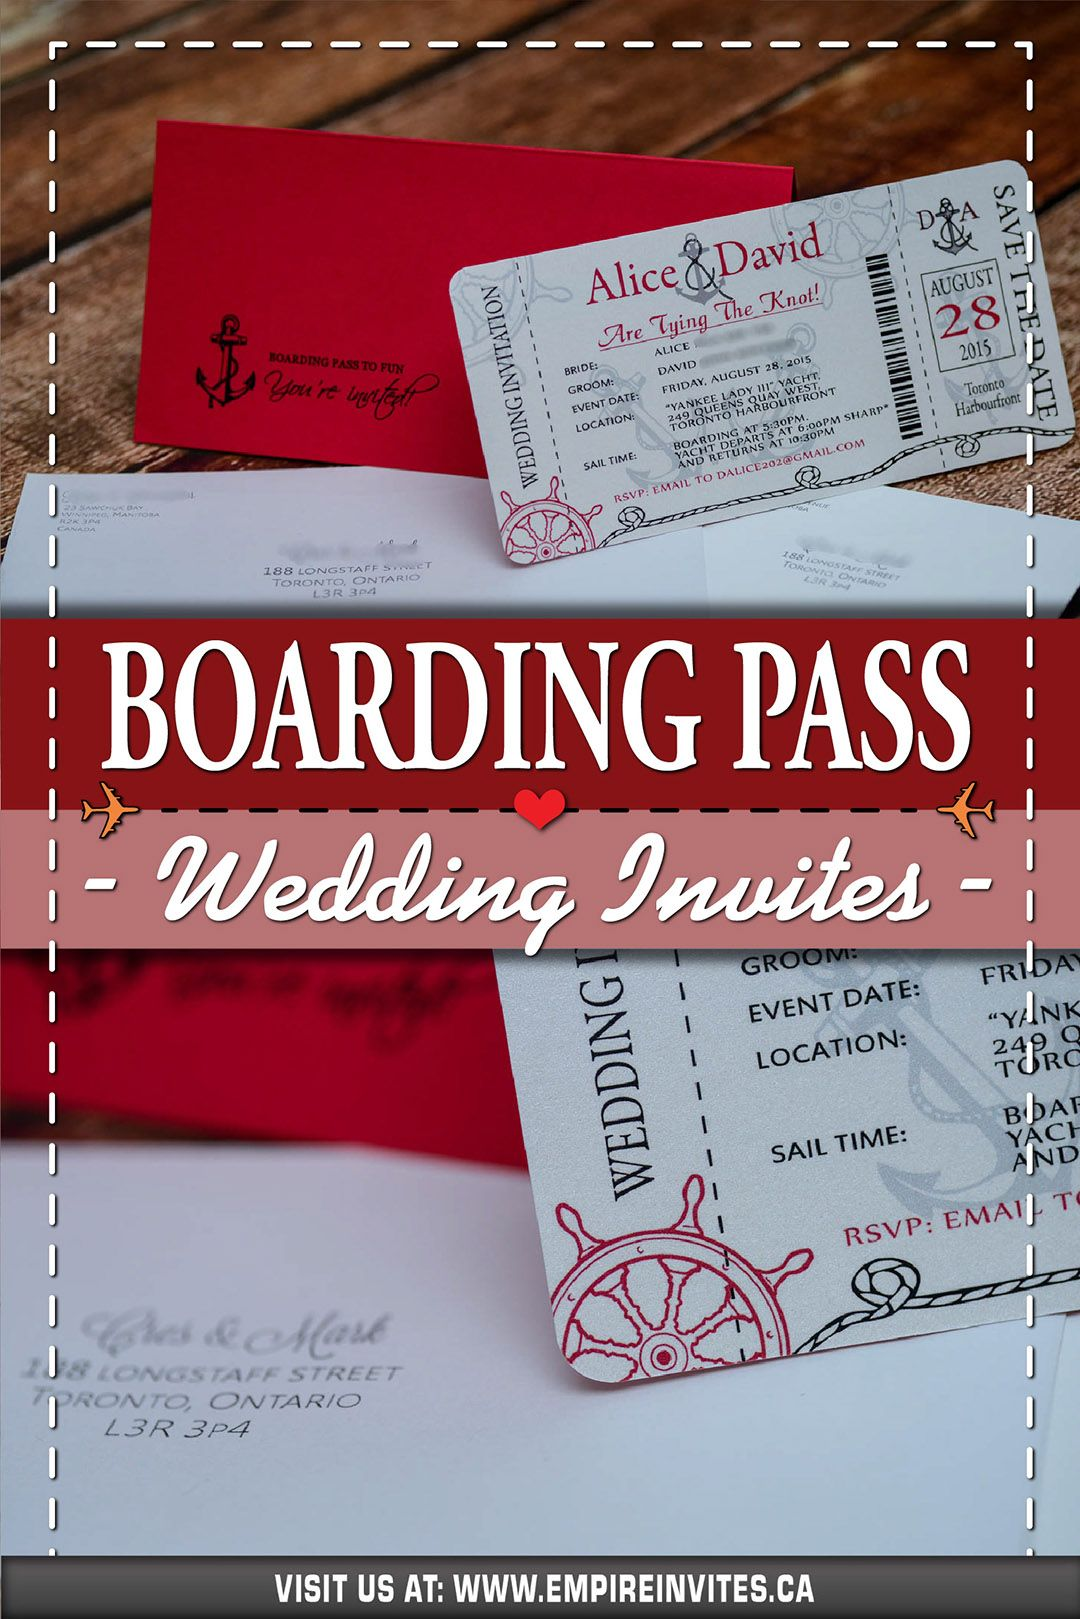 Red Nautical boarding pass wedding invitations for a